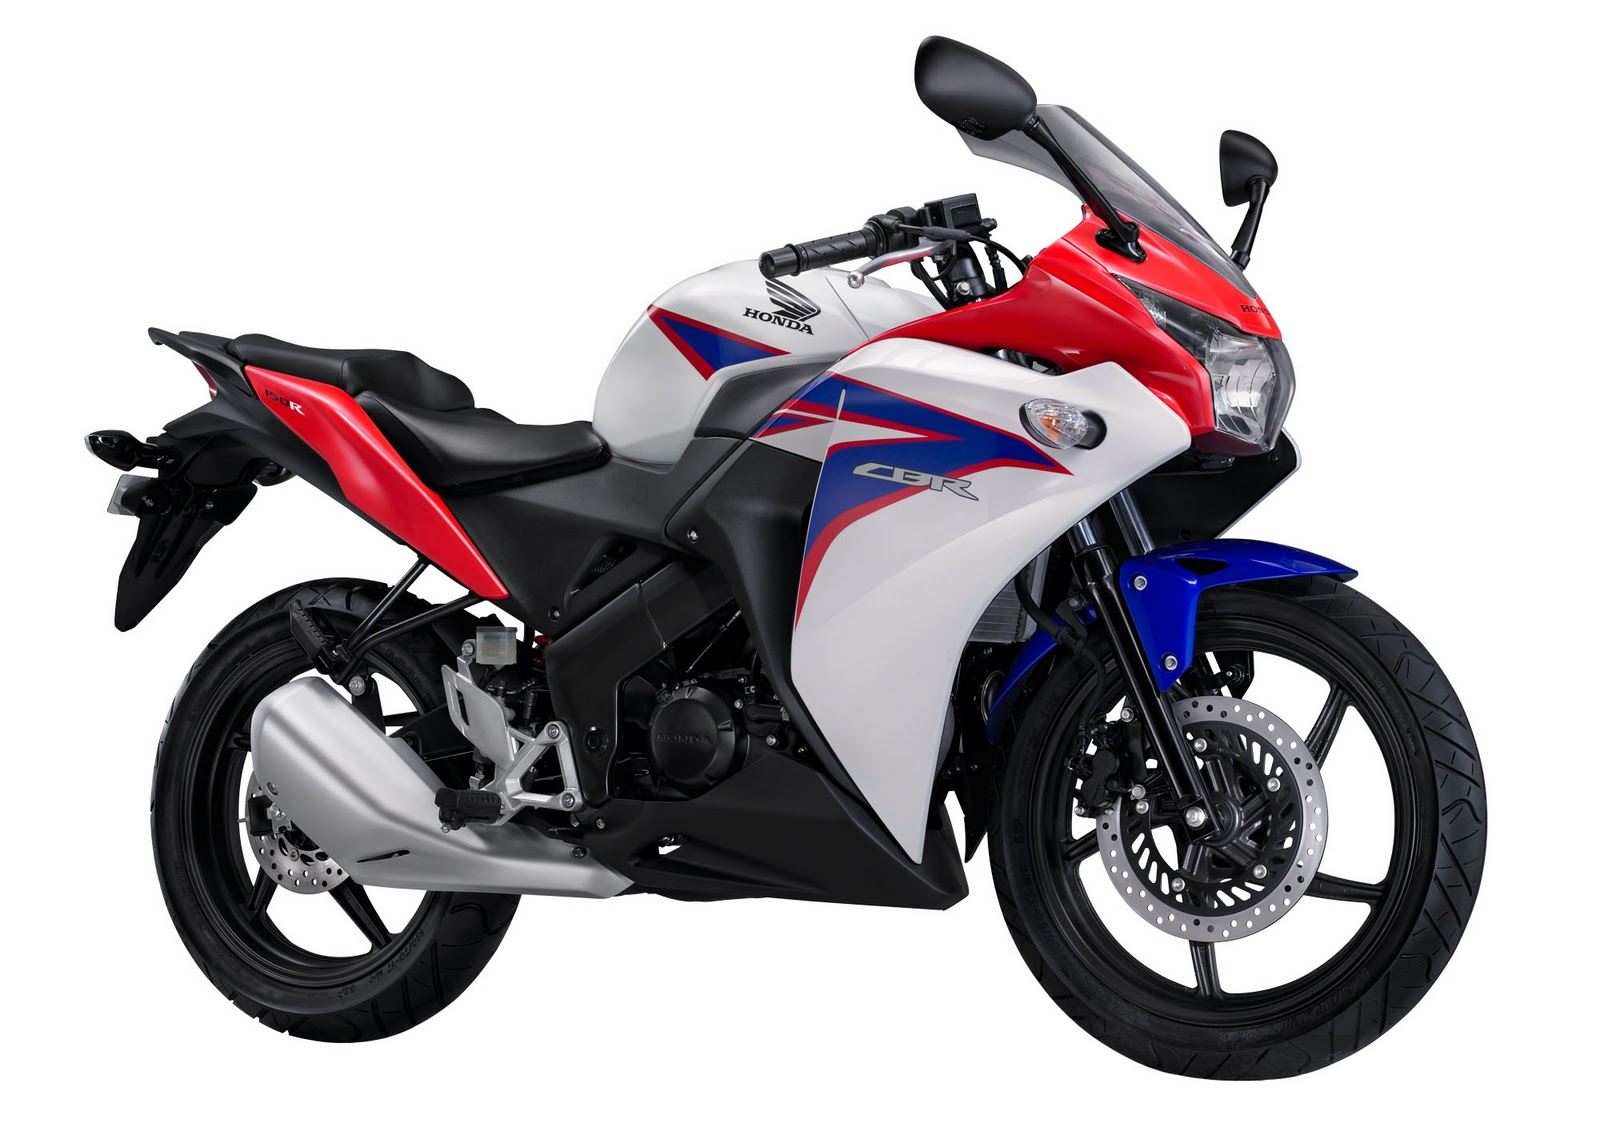 Honda CBR150R has been